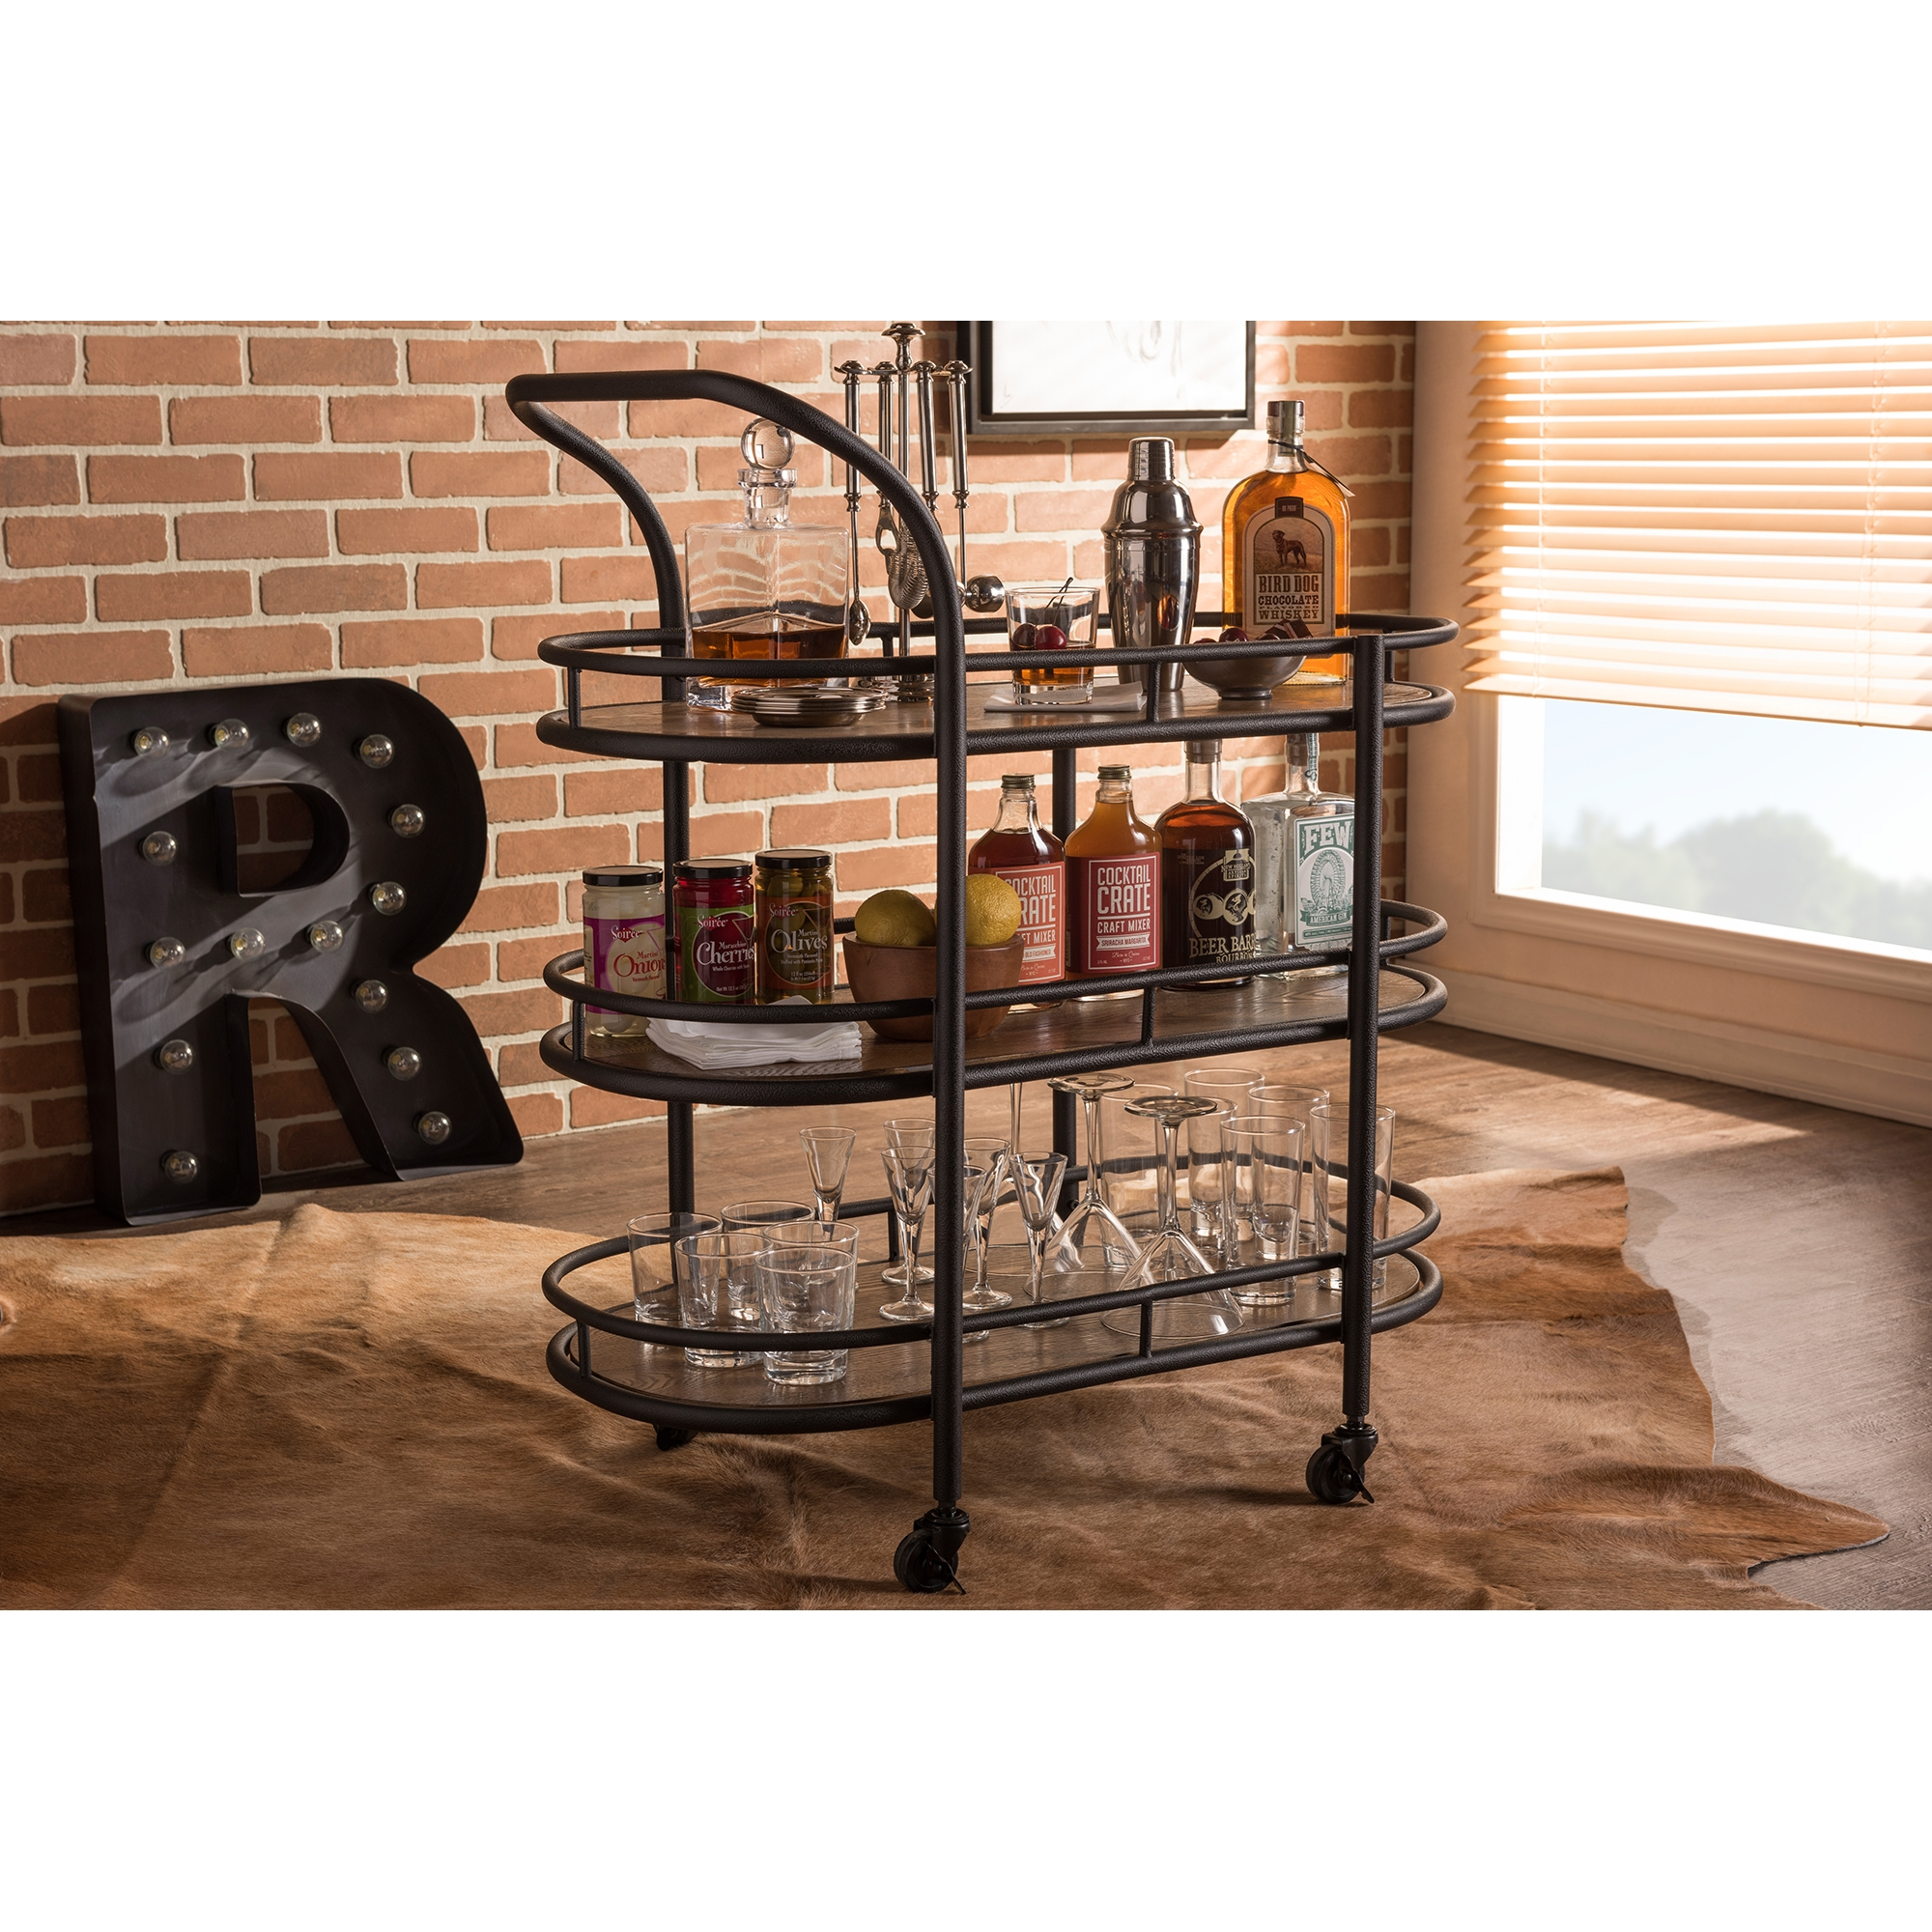 ... Baxton Studio Karlin Rustic Industrial Style Antique Black Textured  Finish Metal Distressed Wood Mobile Kitchen Bar